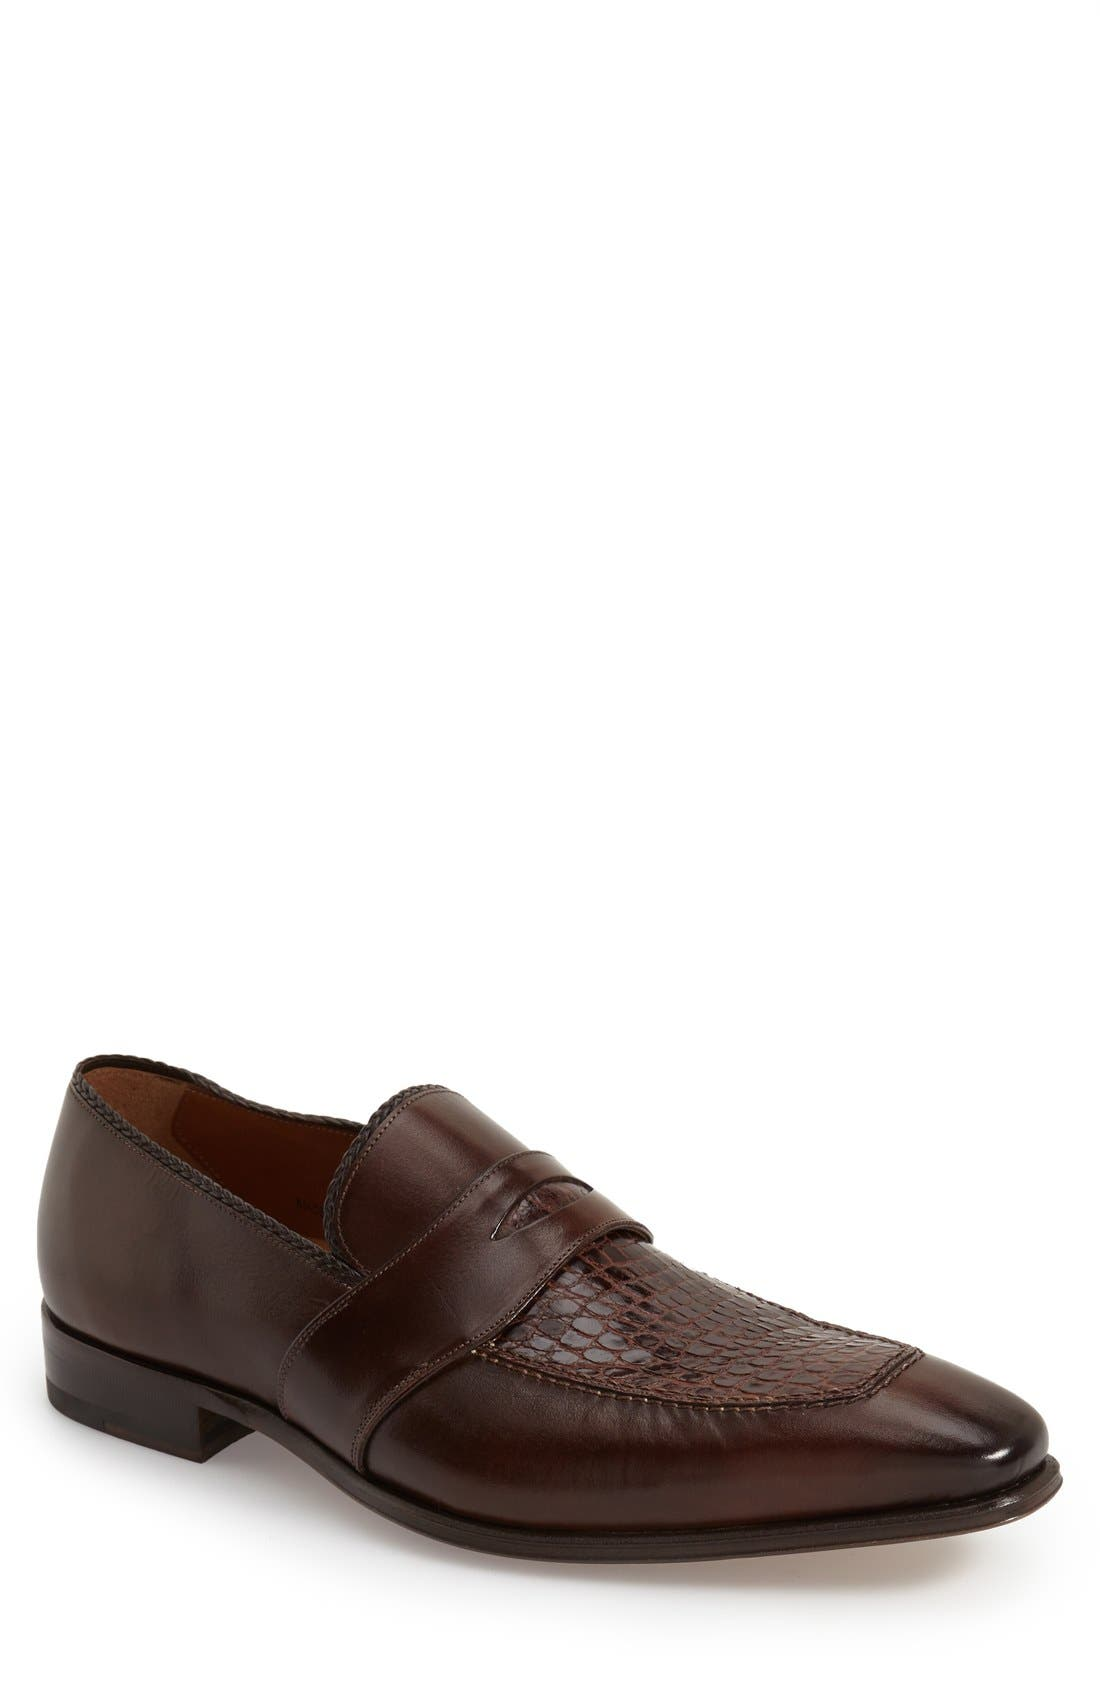 'Lambert' Penny Loafer,                         Main,                         color, Brown Crocodile Leather